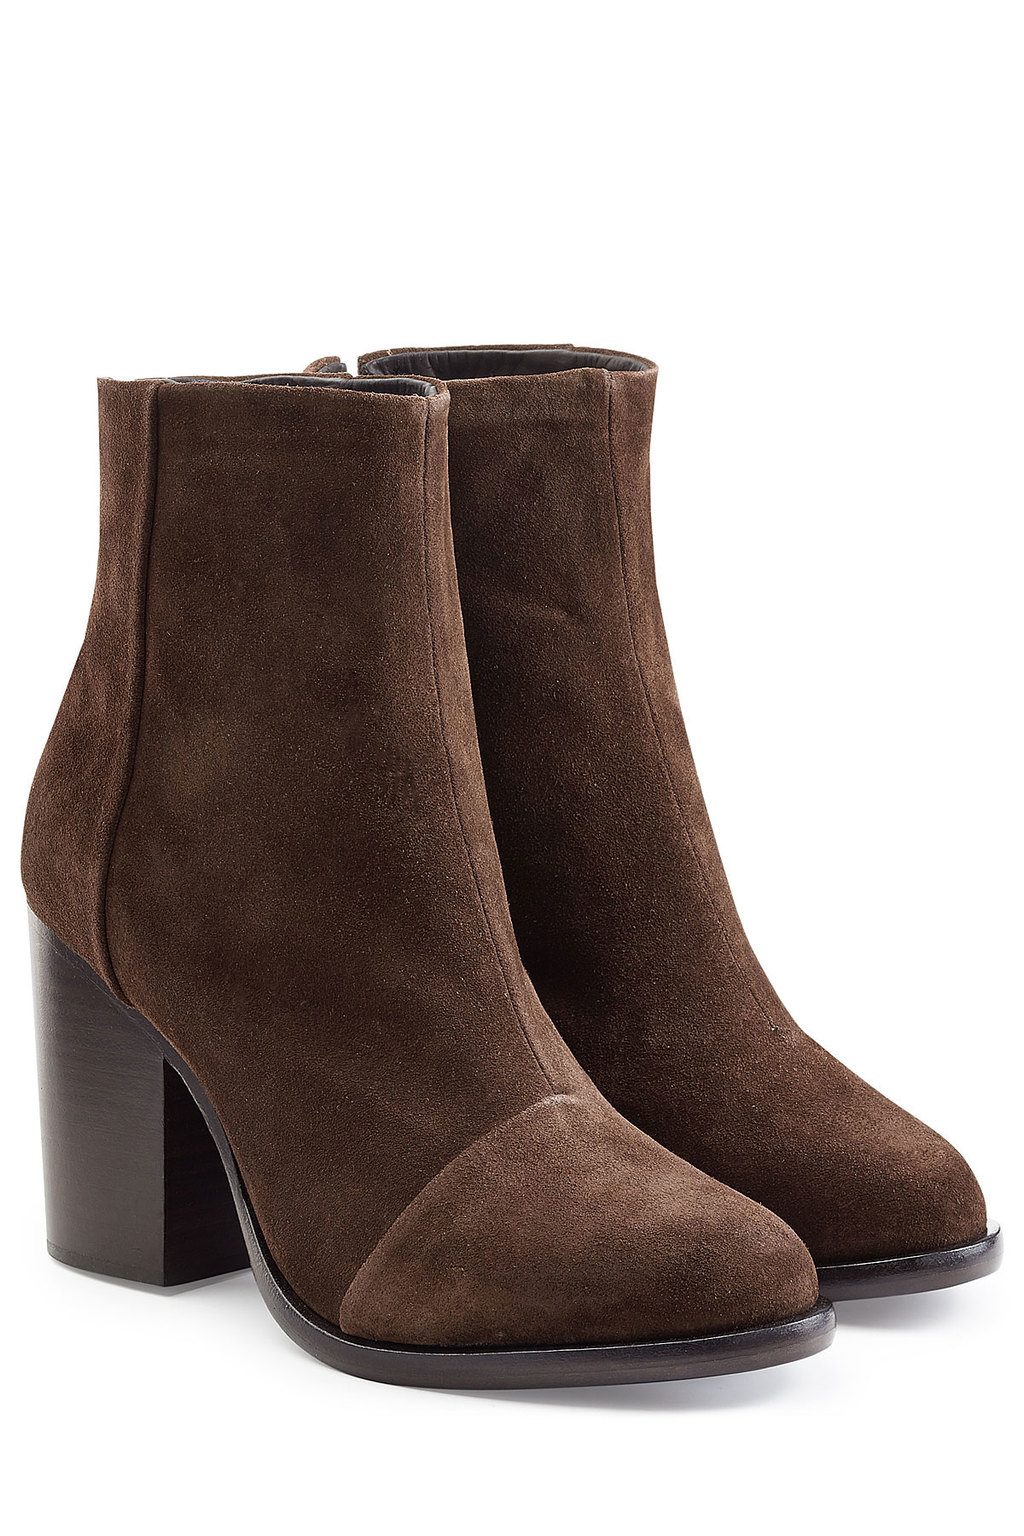 Ashby Suede Ankle Boots Brown - predominant colour: chocolate brown; material: suede; heel height: high; heel: block; toe: round toe; boot length: ankle boot; style: standard; finish: plain; pattern: plain; occasions: creative work; season: s/s 2016; wardrobe: highlight